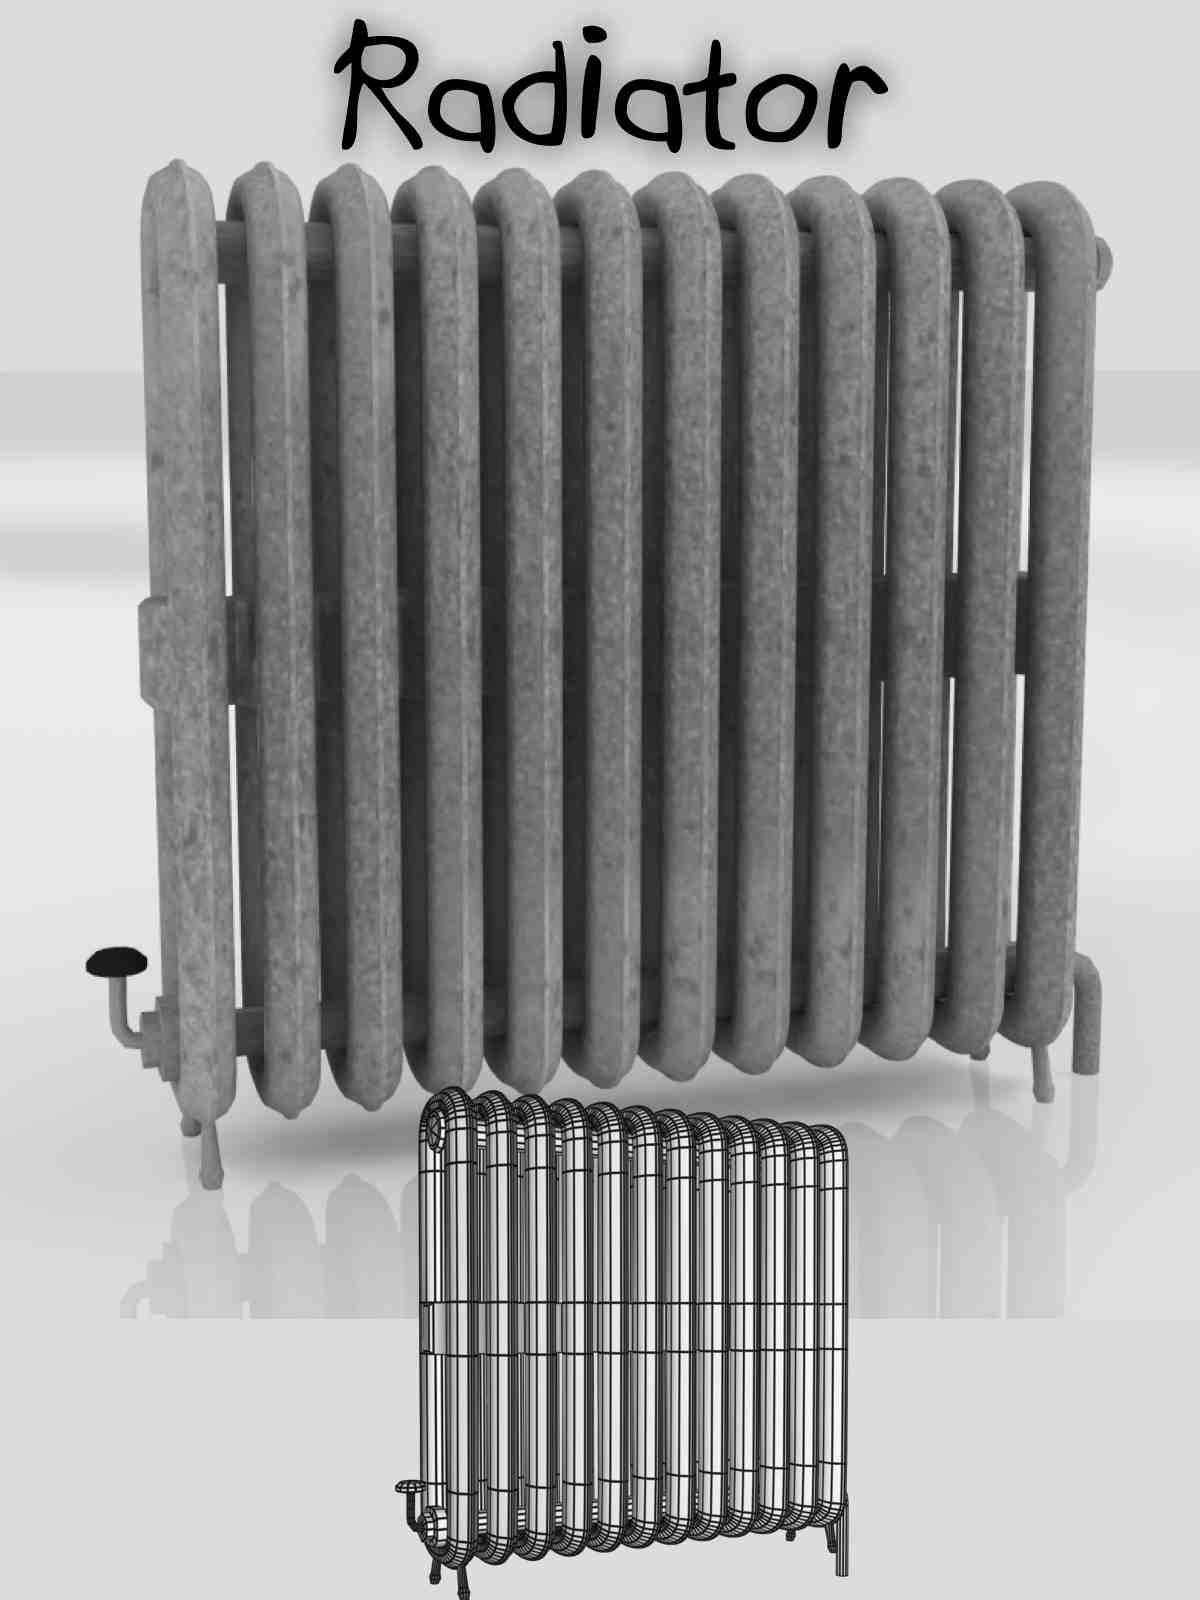 Radiator by uncle808us